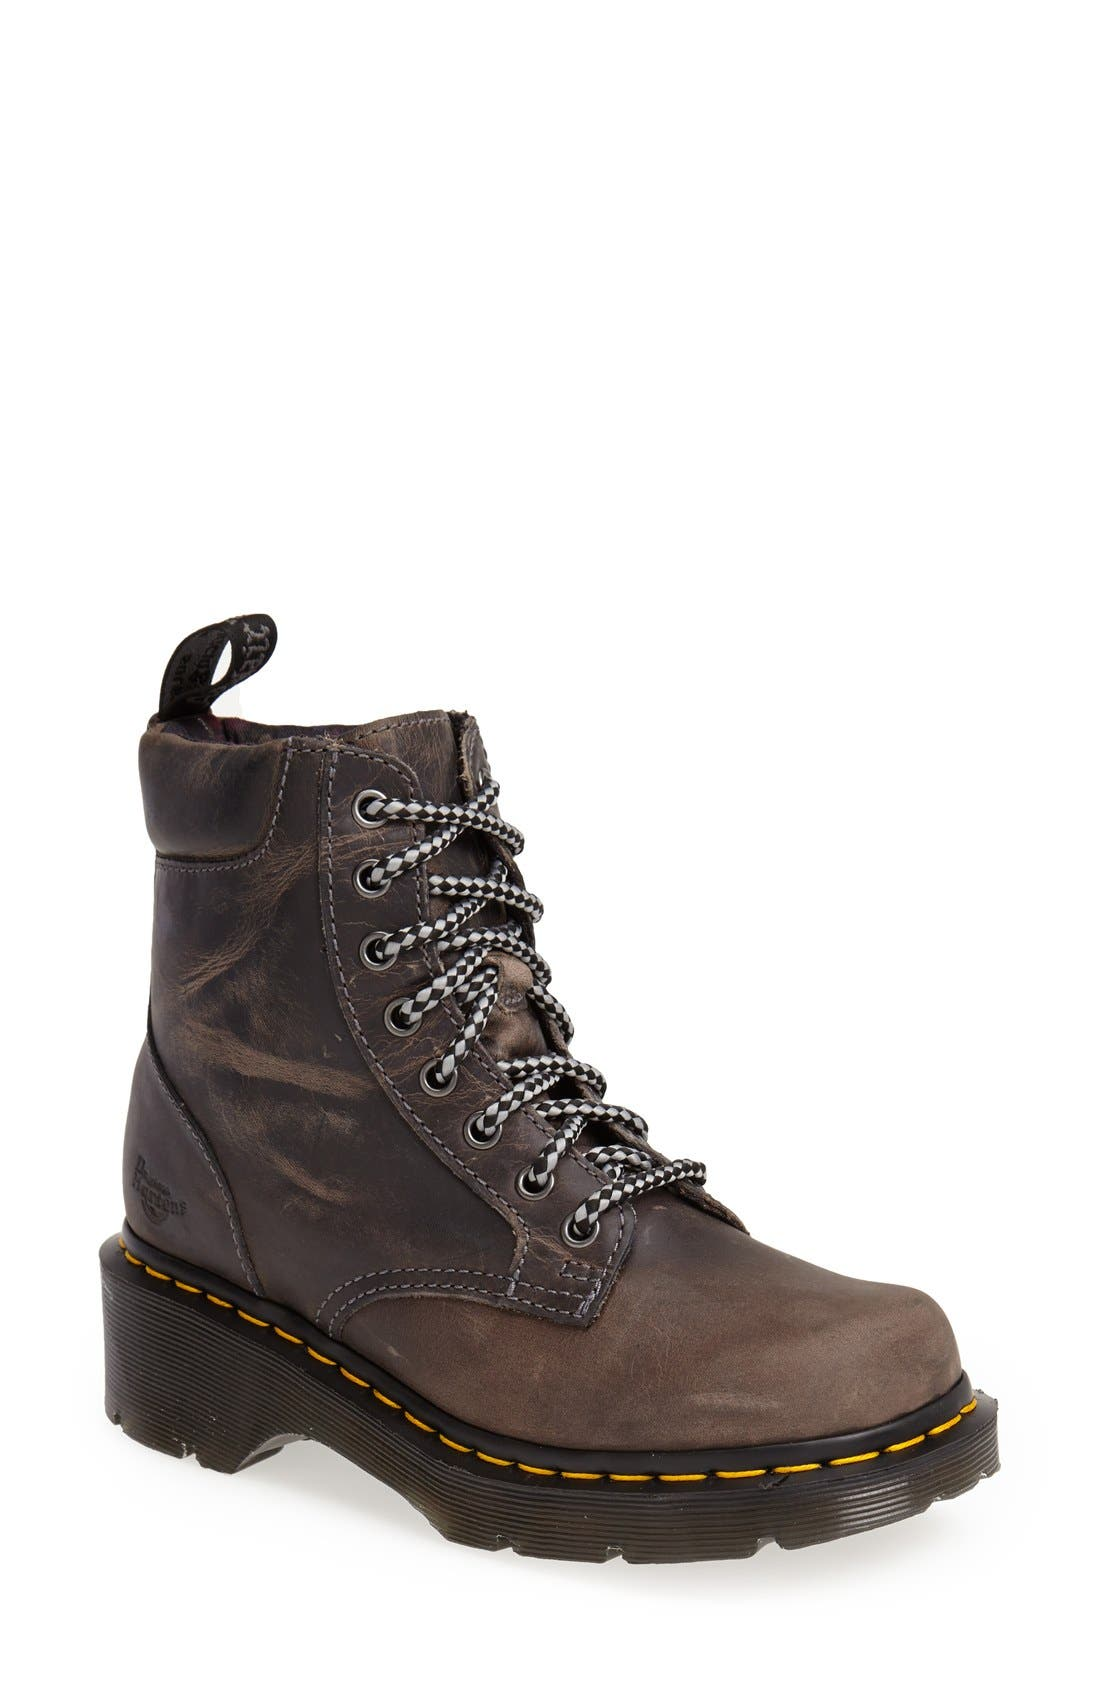 Main Image - Dr. Martens 'Dharma' Leather Boot (Women)